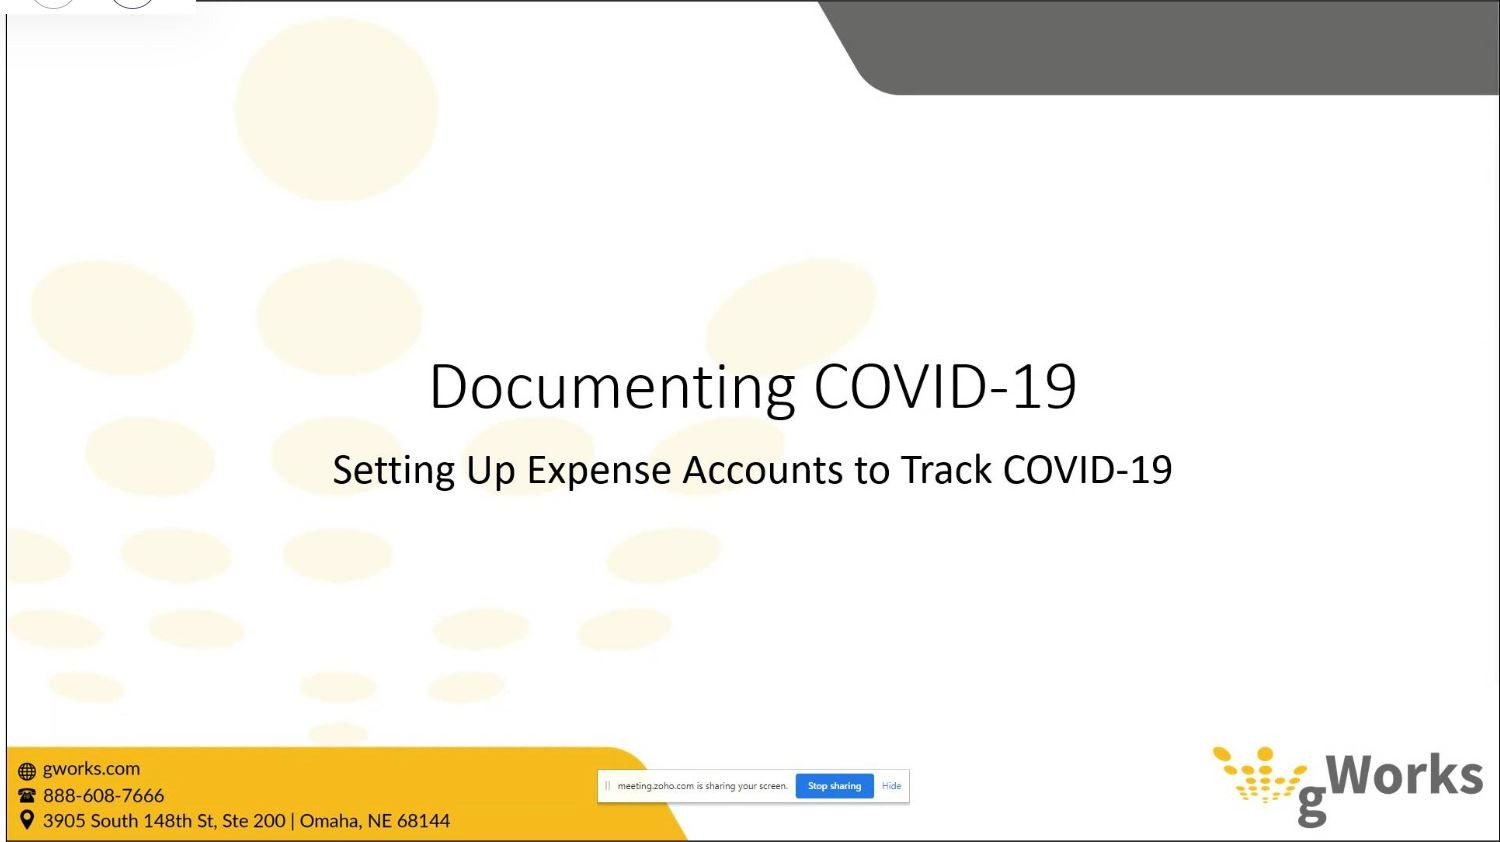 General Ledger: Setting Up Expense Accounts for COVID-19 Expenses